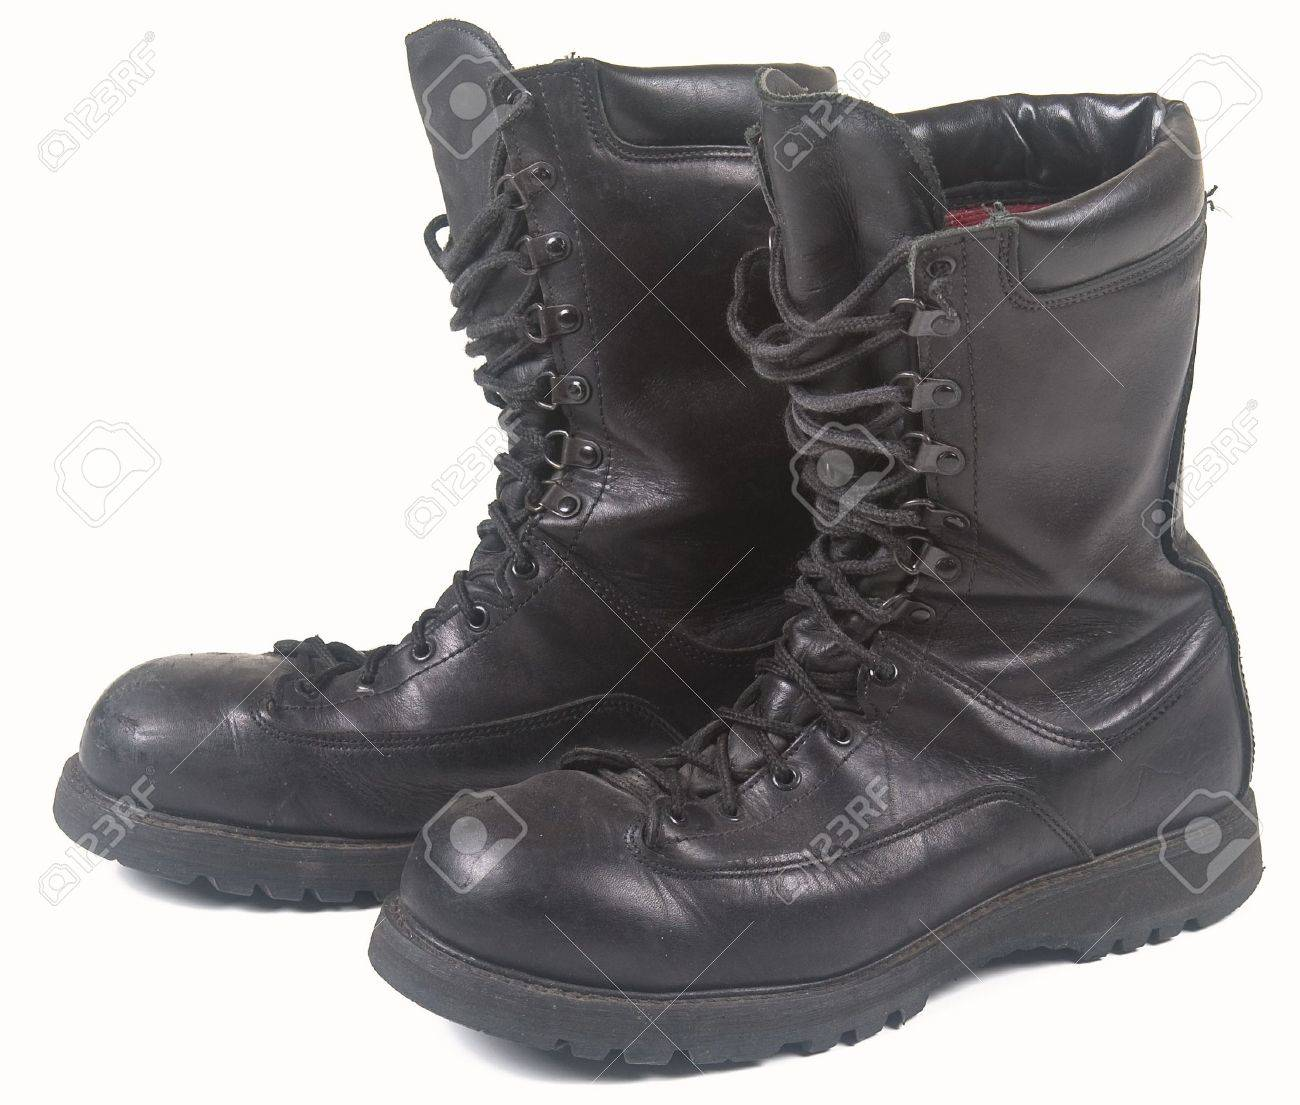 Military Black Leather Boots On A White Background Stock Photo